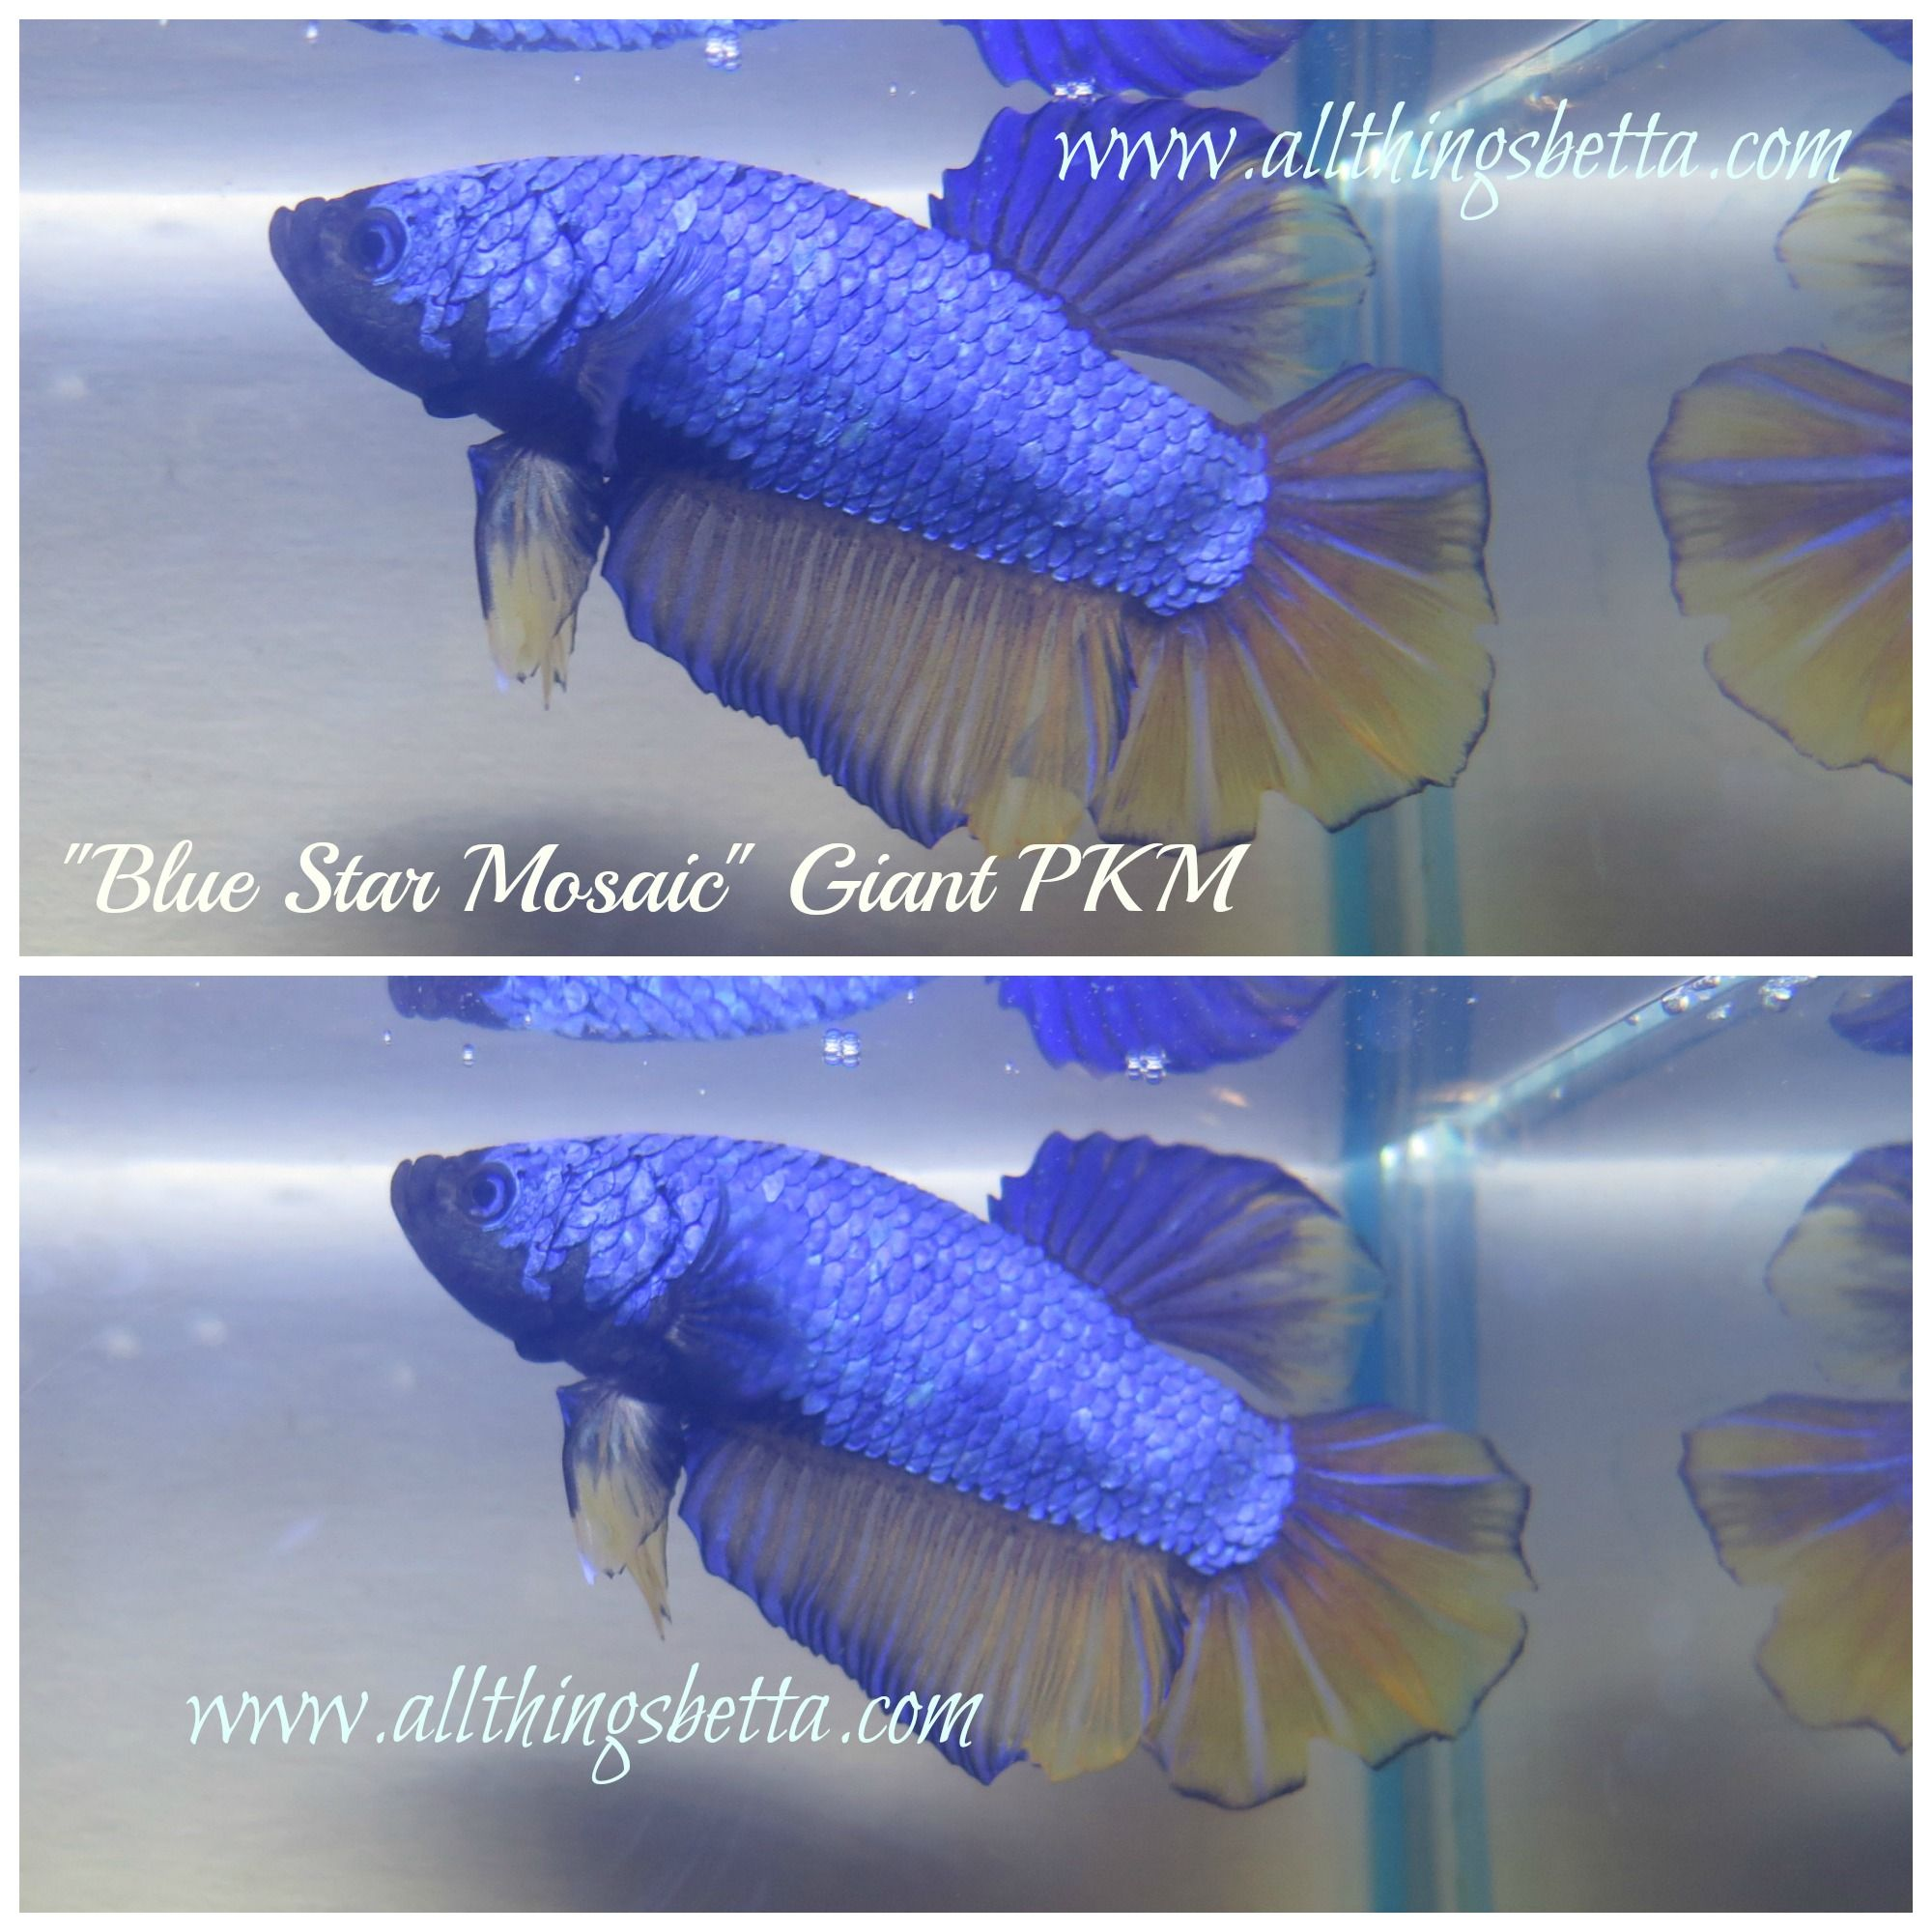 Pretty Giant Plakat Betta Male available from www